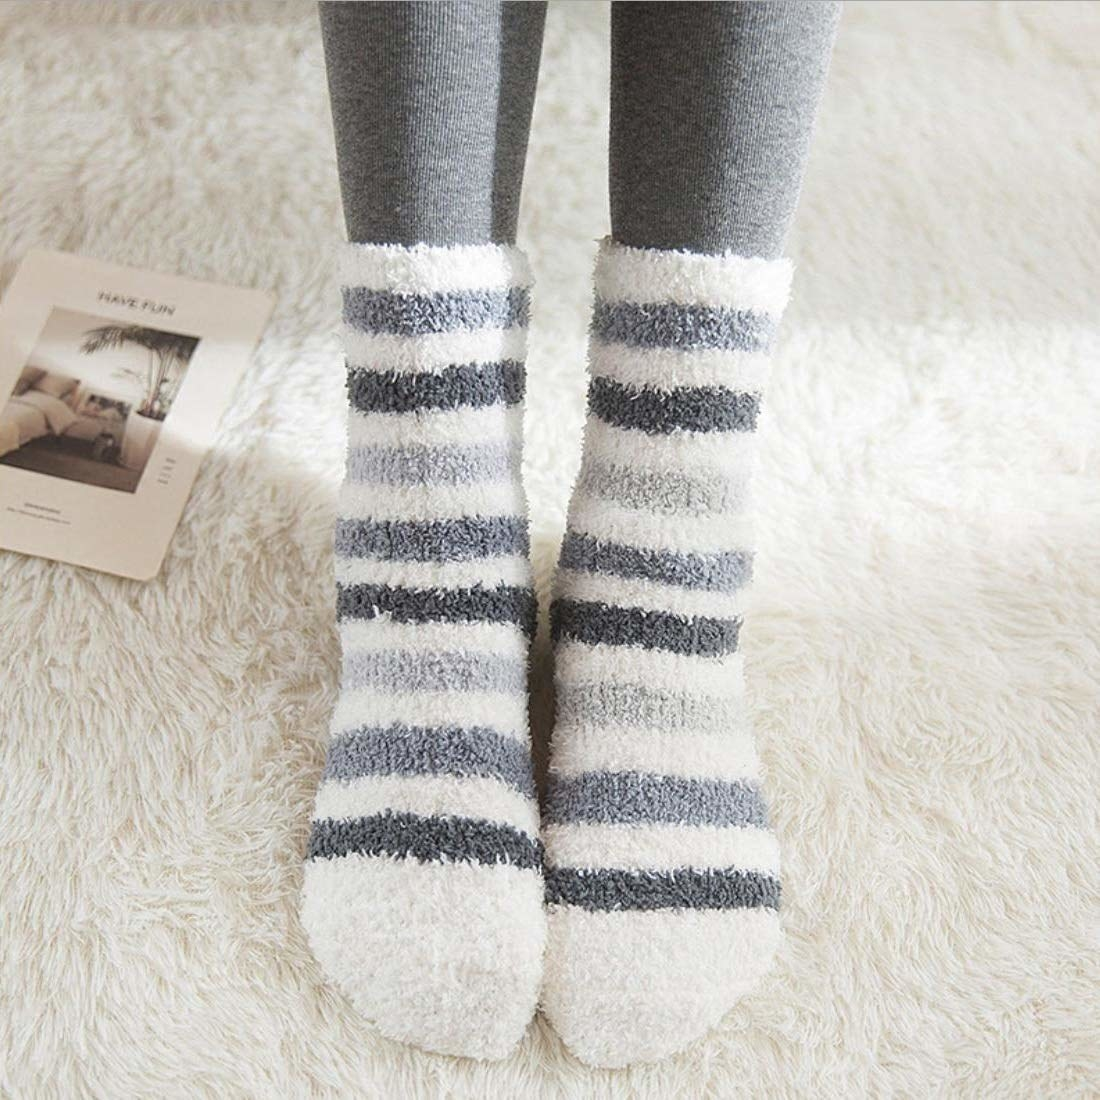 Fuzzy striped socks that hit above ankle